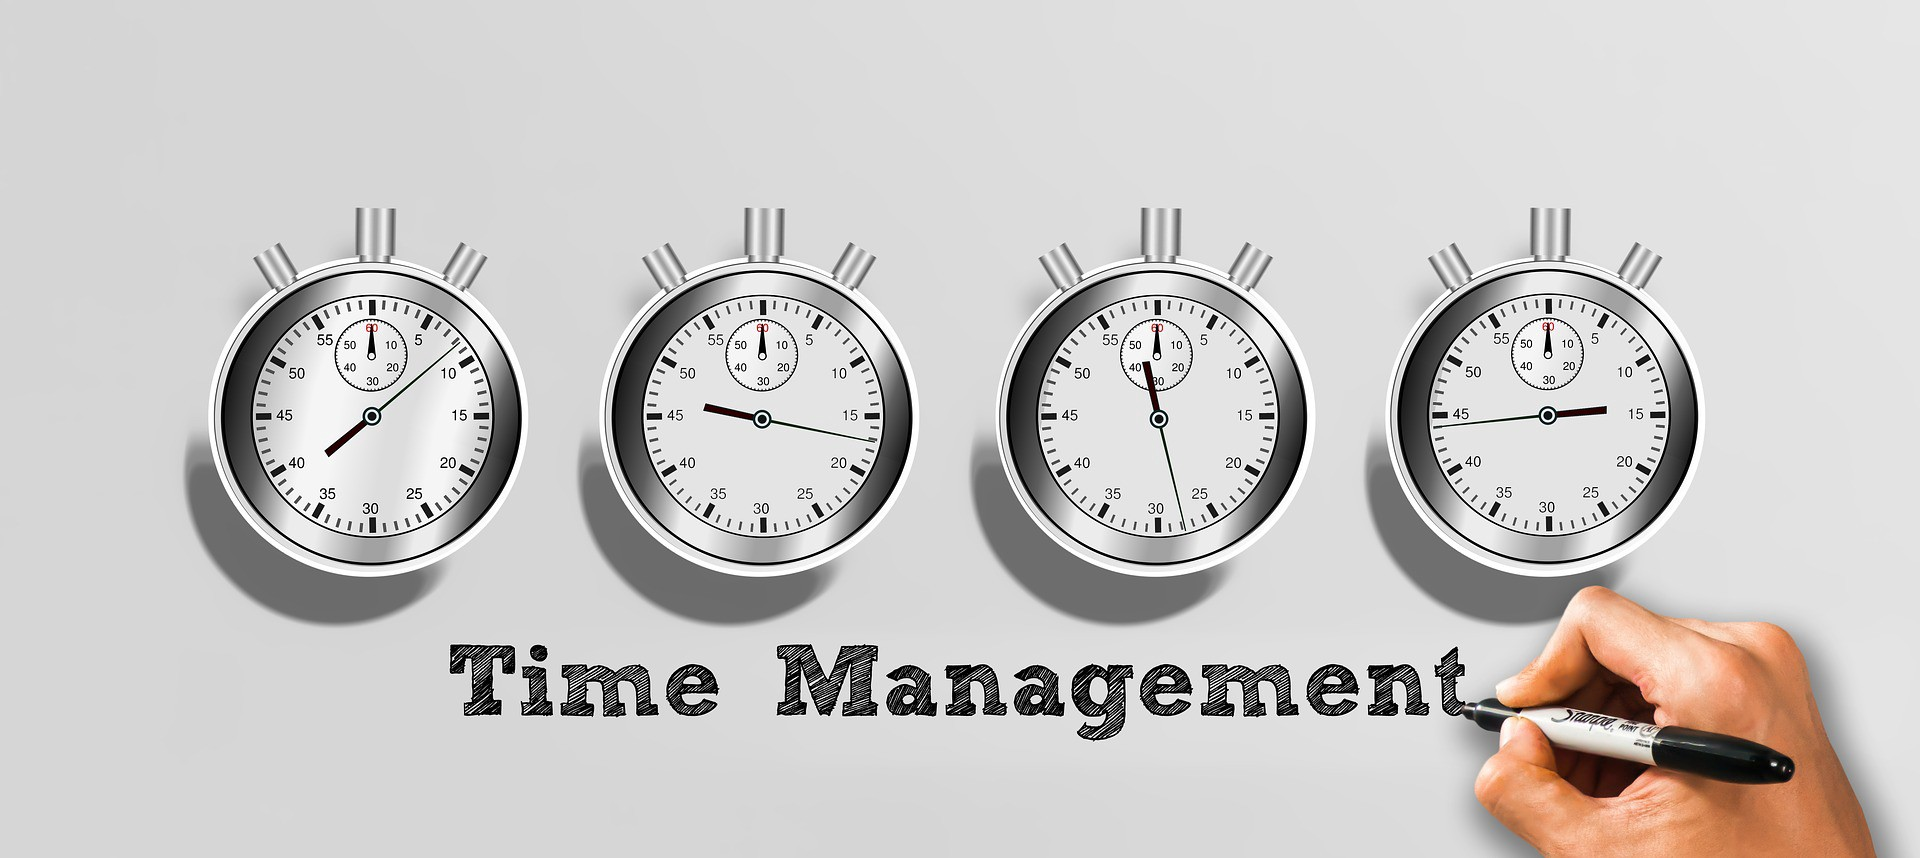 9 Super Easy Time Management Tips For Entrepreneurs To Tackle The Clock By Proofhub Proofhub Blog